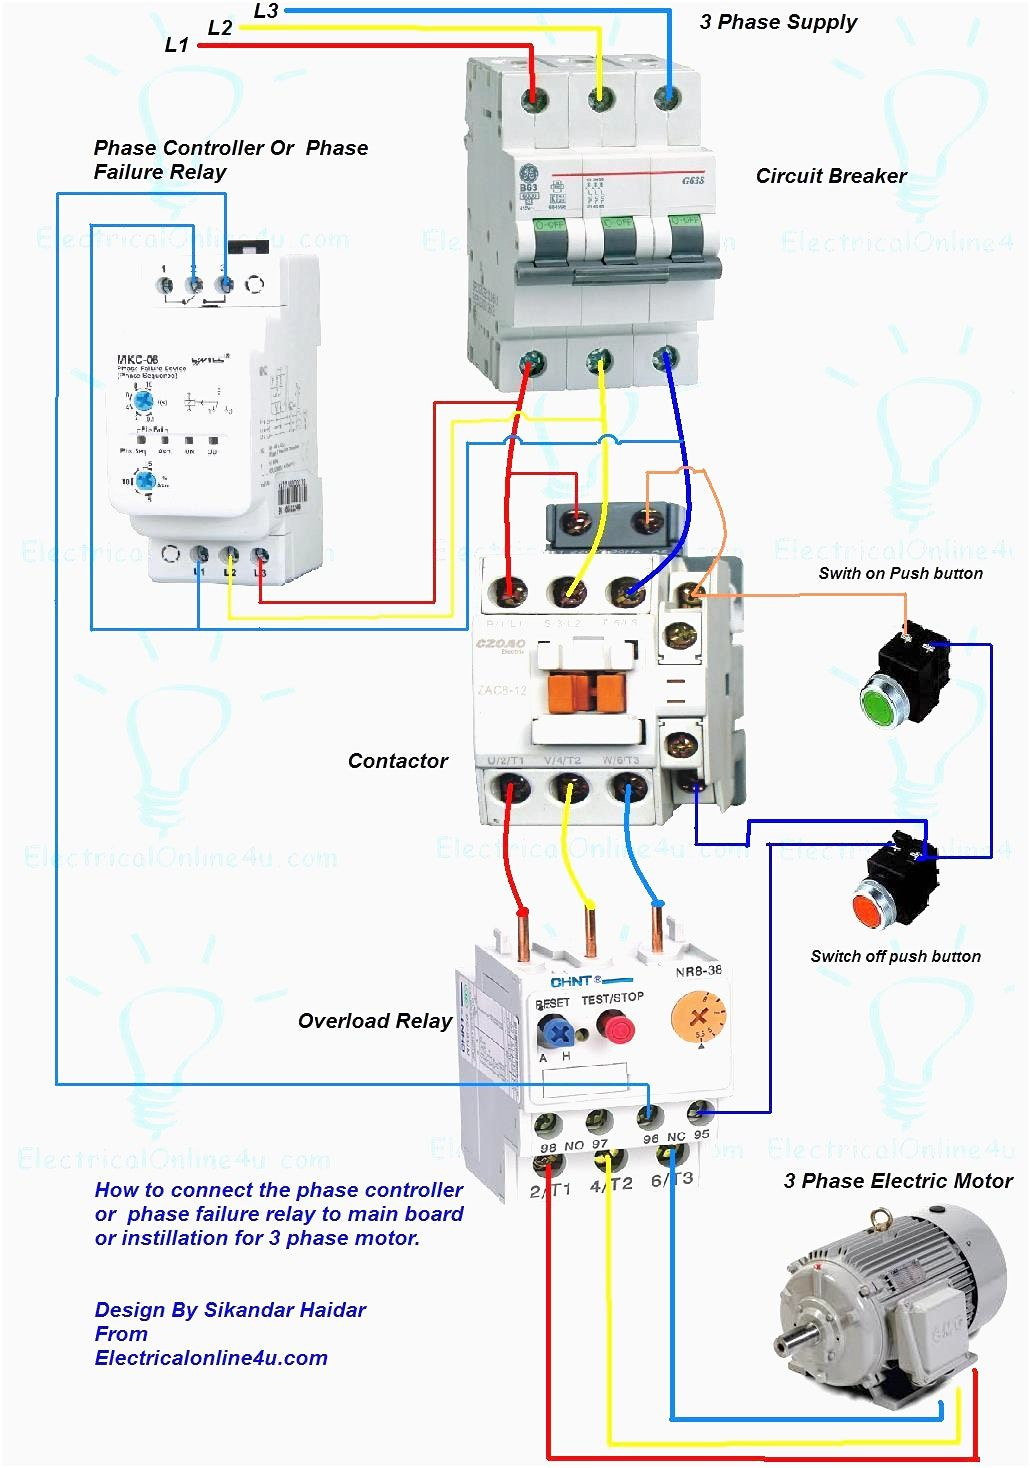 wiring diagram for motor starter 3 phase controller failure relay 6 wire 3 phase motor wiring 3 phase motor starter relay wiring diagram [ 1030 x 1468 Pixel ]